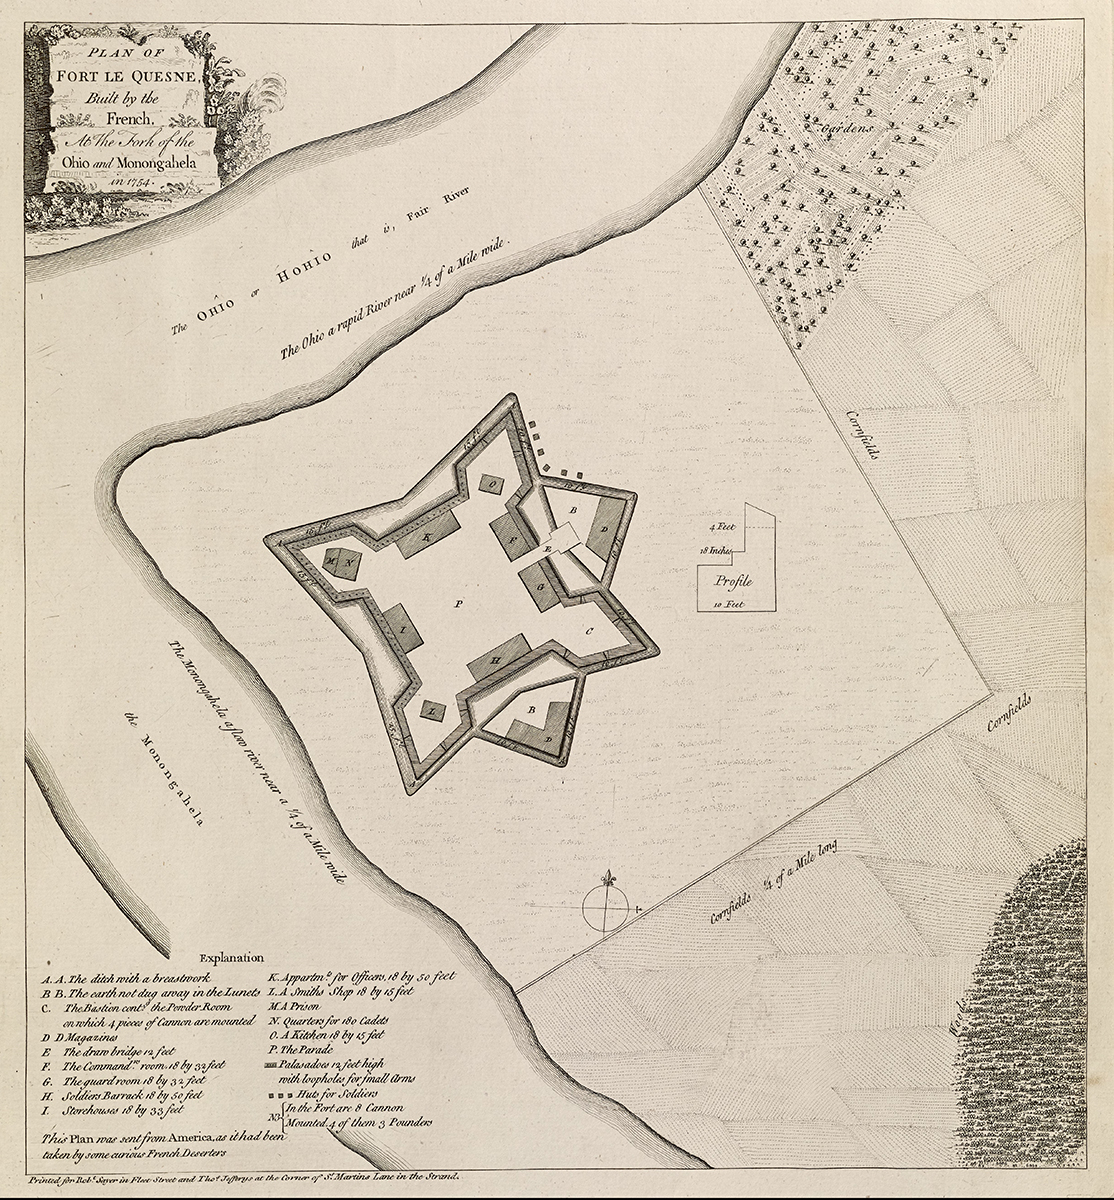 """""""Plan of Fort Le Quesne,"""" from a copy made in 1771. Map reproduction courtesy of the Norman B. Leventhal Map Center at the Boston Public Library."""